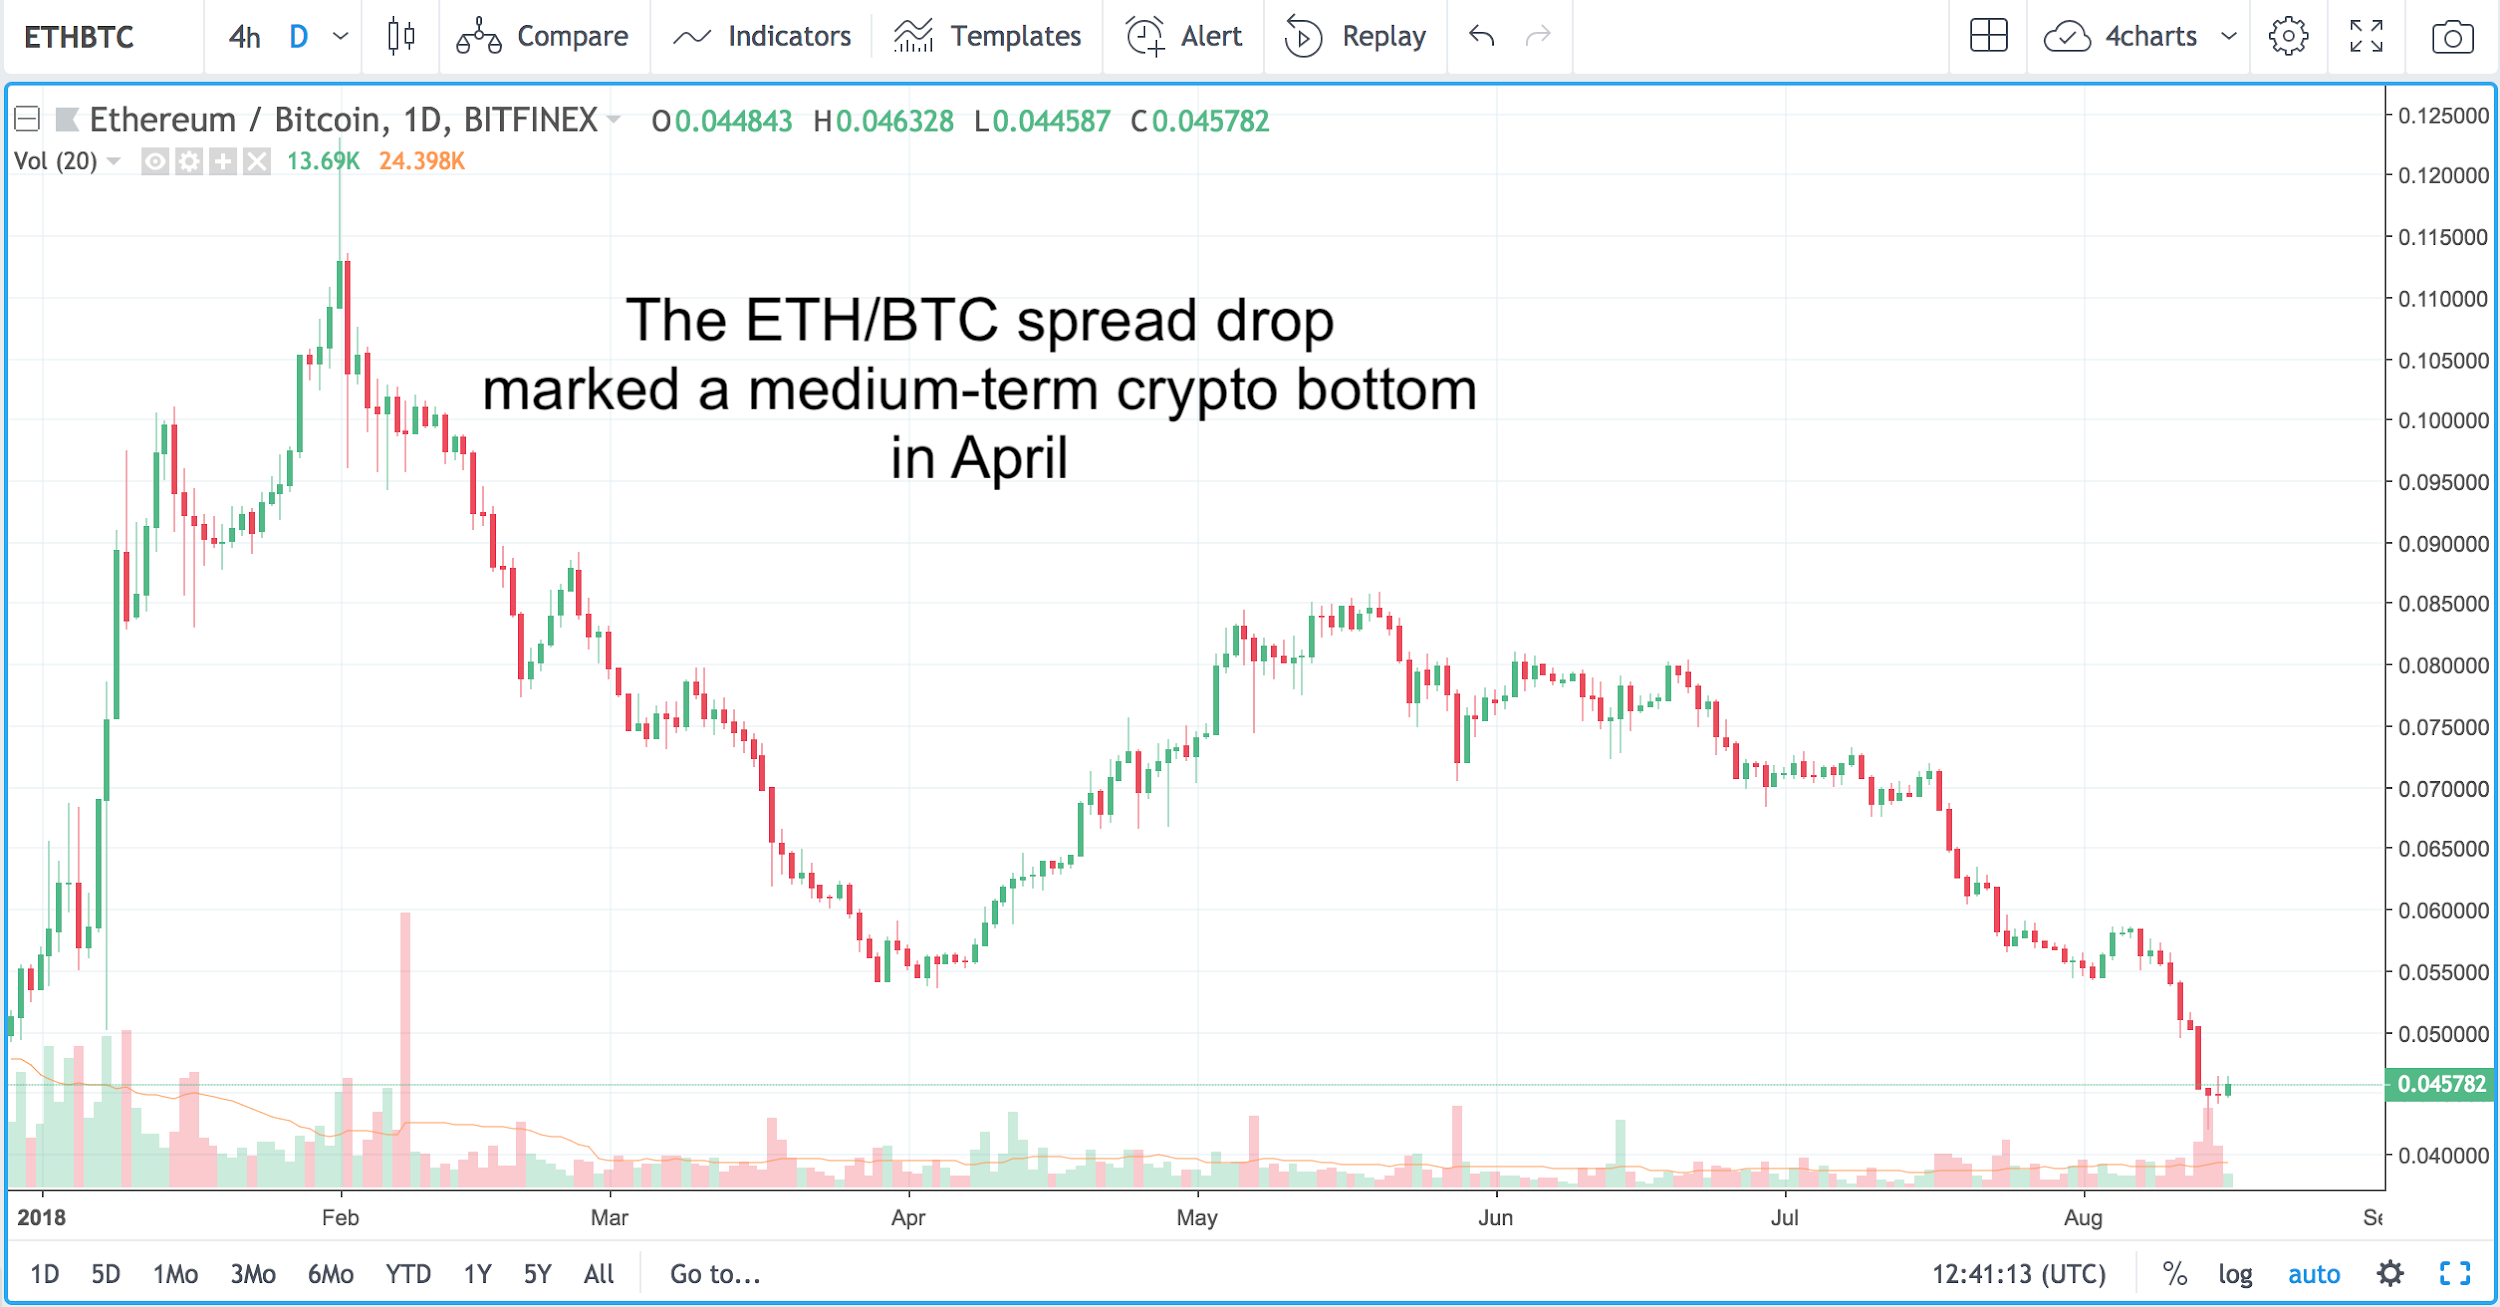 In the past few weeks, things have taken a turn for the worse. Ethereum has plummeted 40% and dragged crypto markets lower.